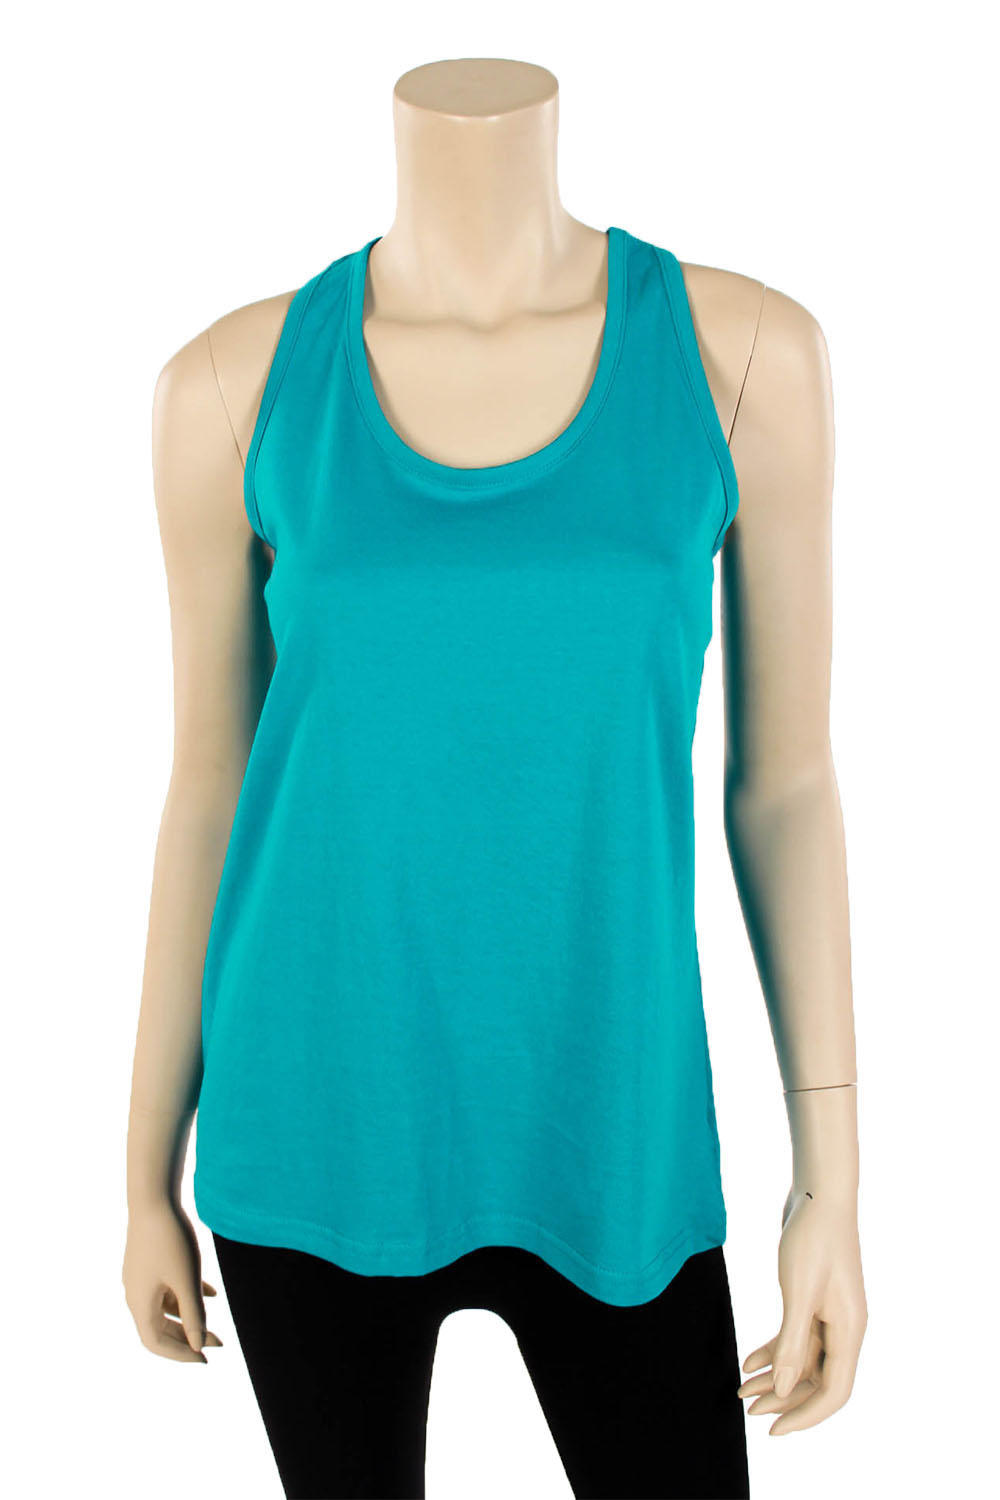 Womens Loose Fit Racerback Tank Top Relaxed Flowy Cotton